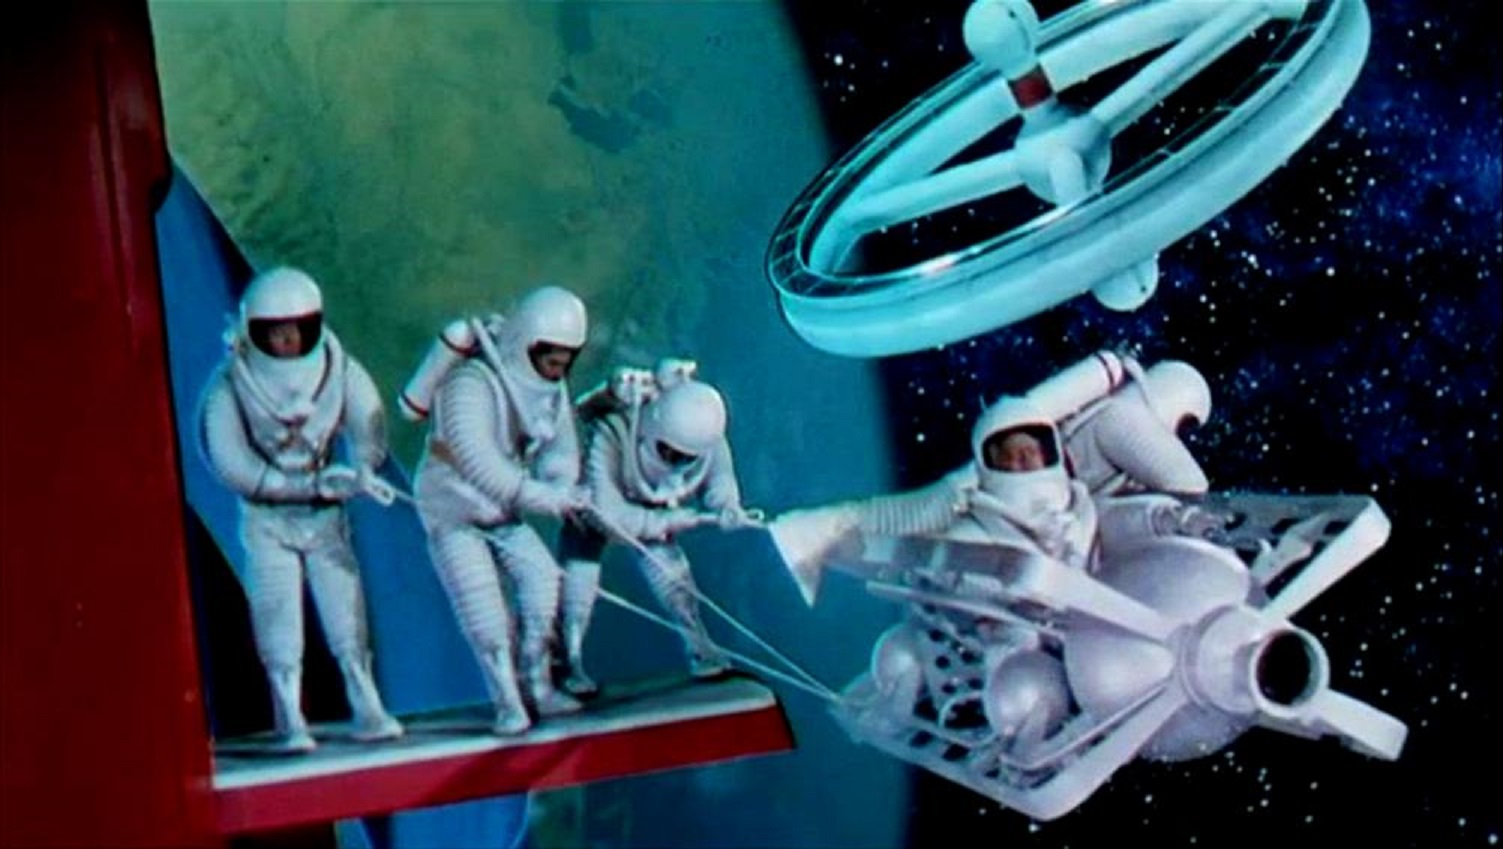 Astronauts using the space taxi in Conquest of Space (1955)